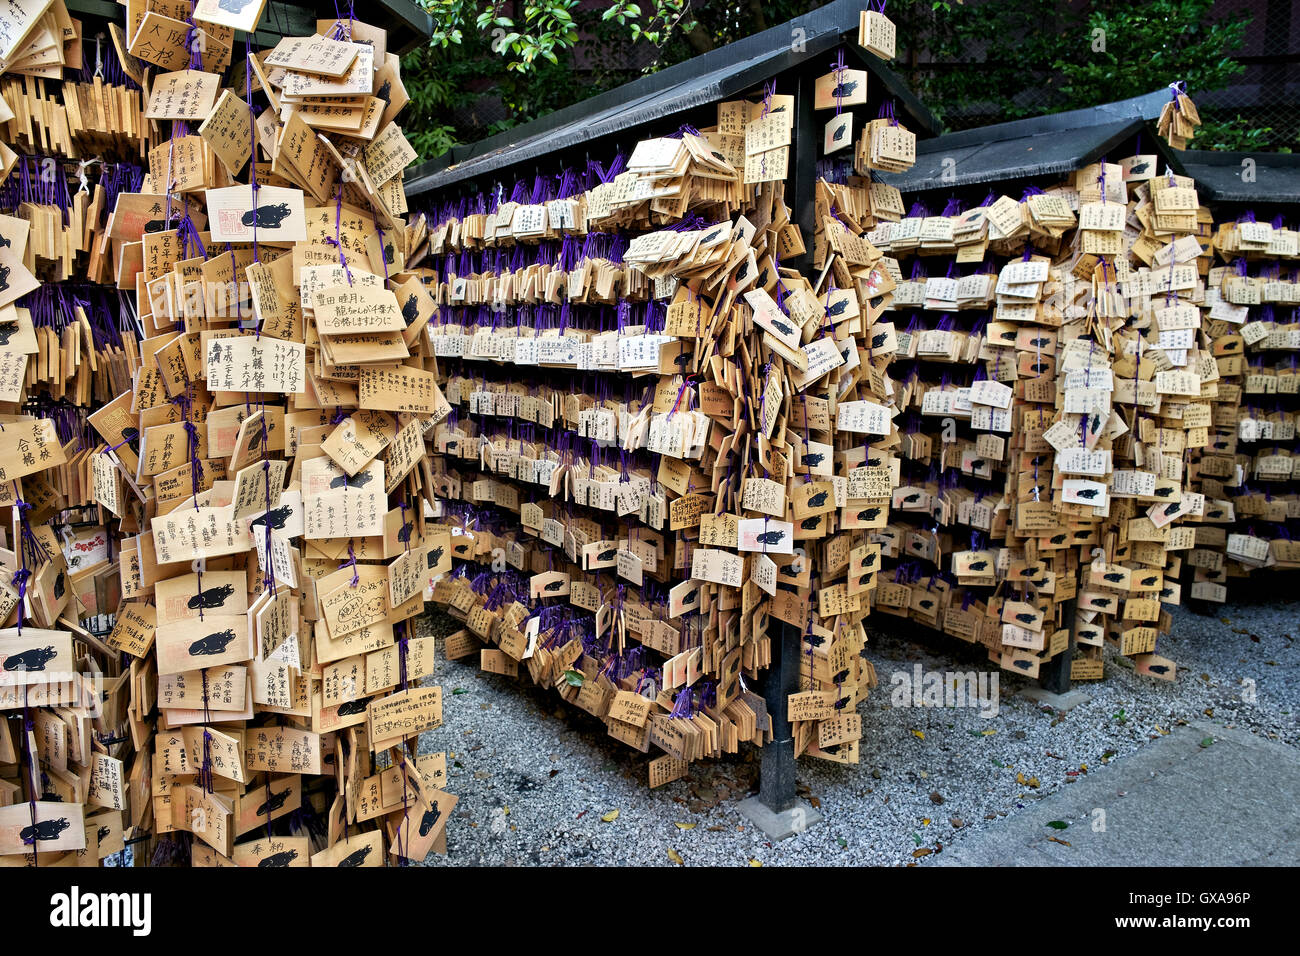 Japan, Honshu island, Kansai, Kyoto, ema or wooden wishing plates at Kitano Tenmangu shrine. - Stock Image